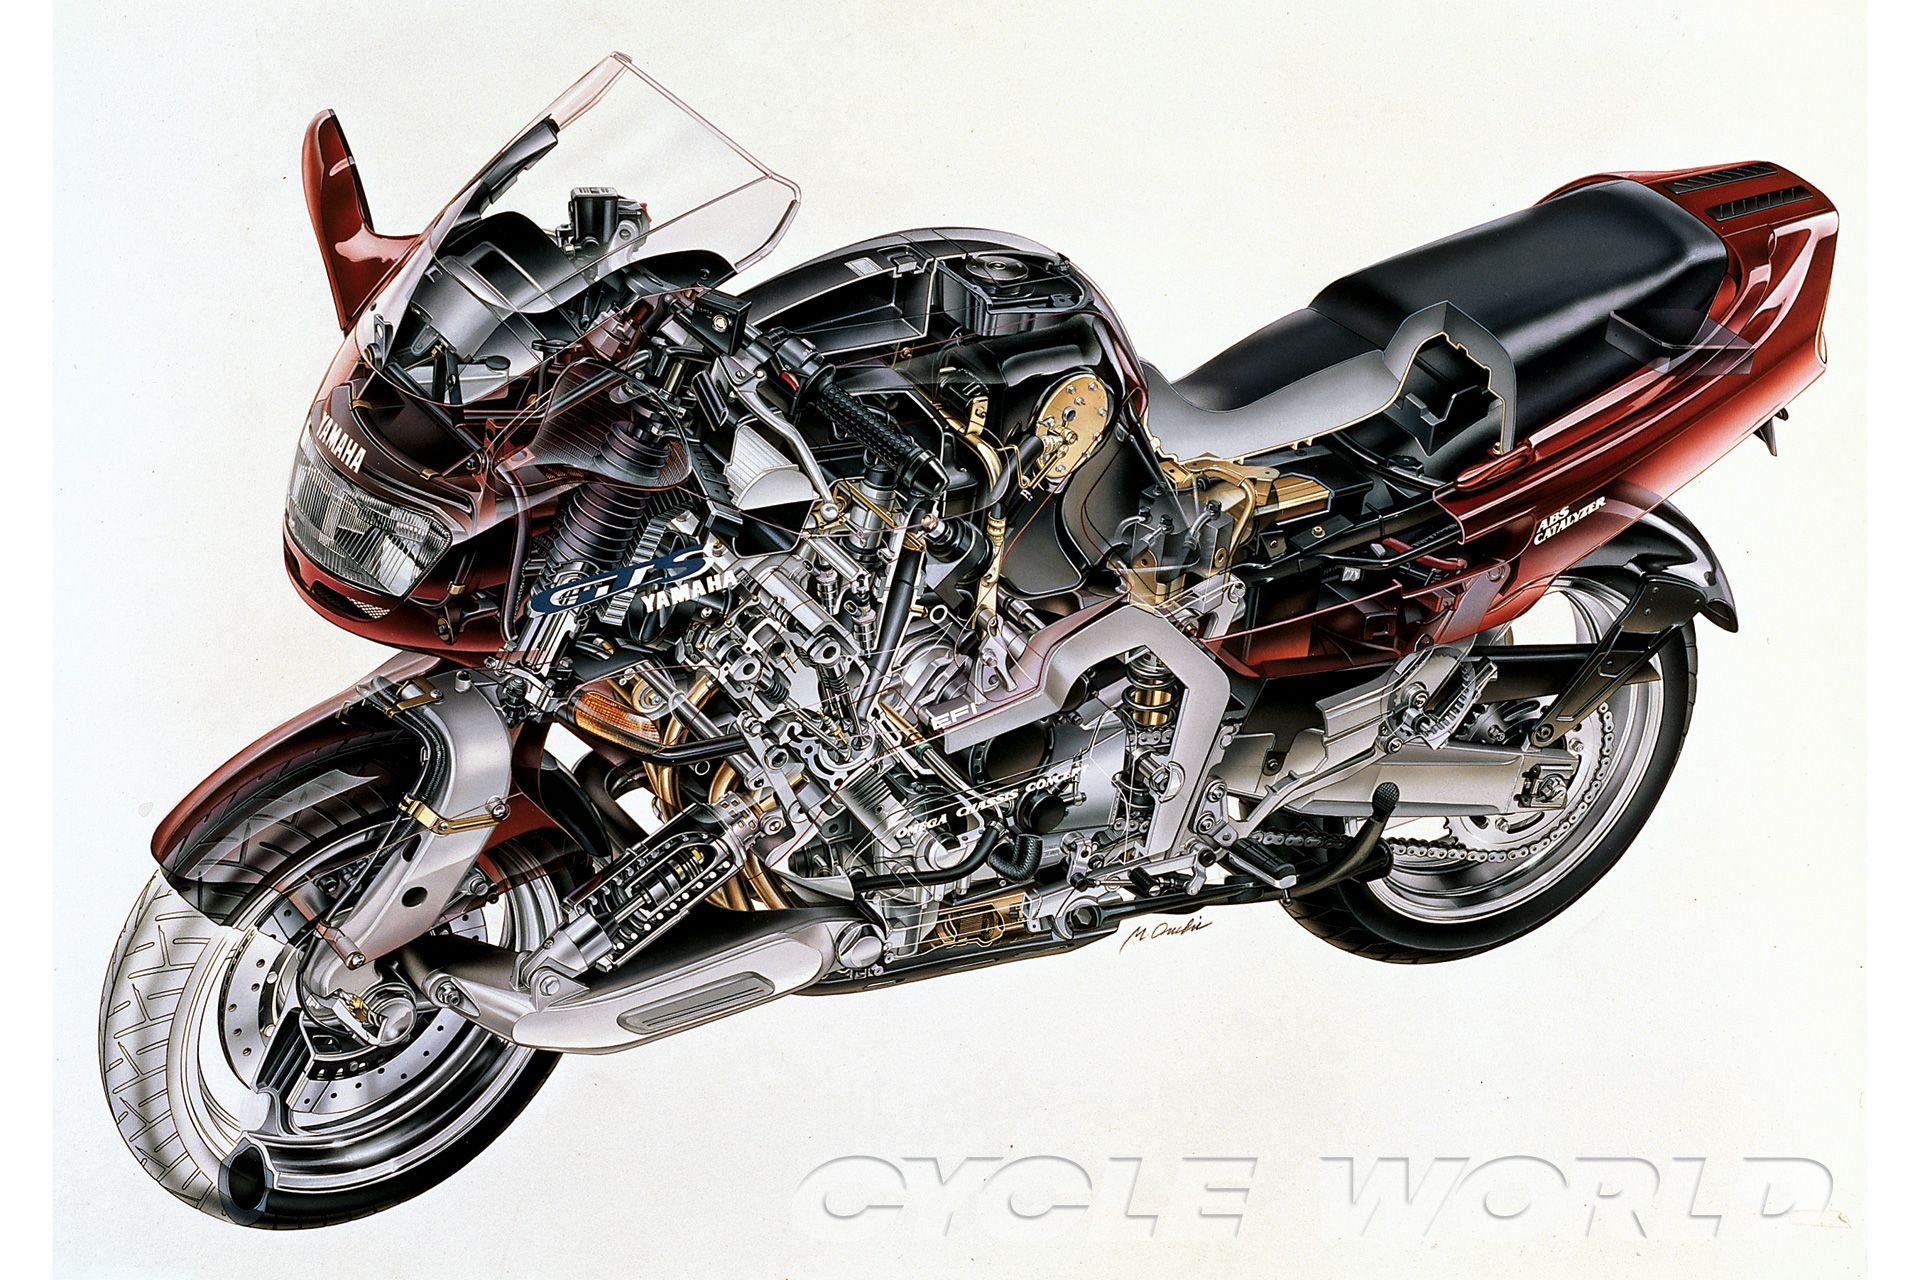 Just 3 years after the Morpho came the 1993 Yamaha GTS1000 production bike with center-hub steering.